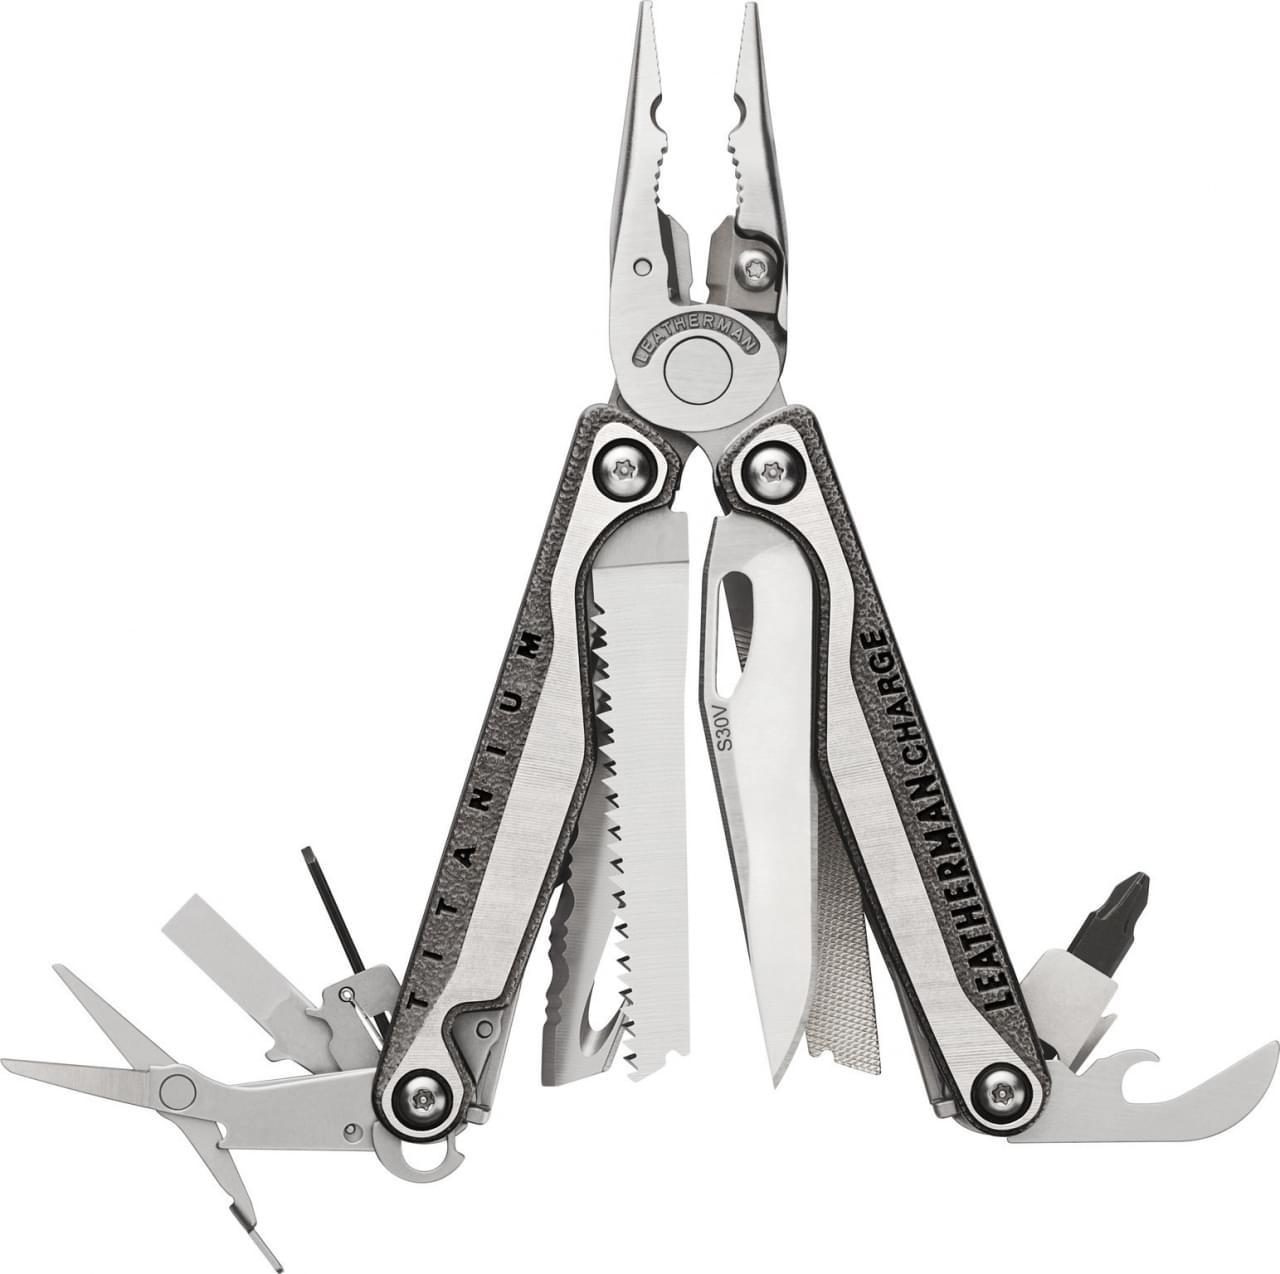 Leatherman Charge TTi+ Multitool